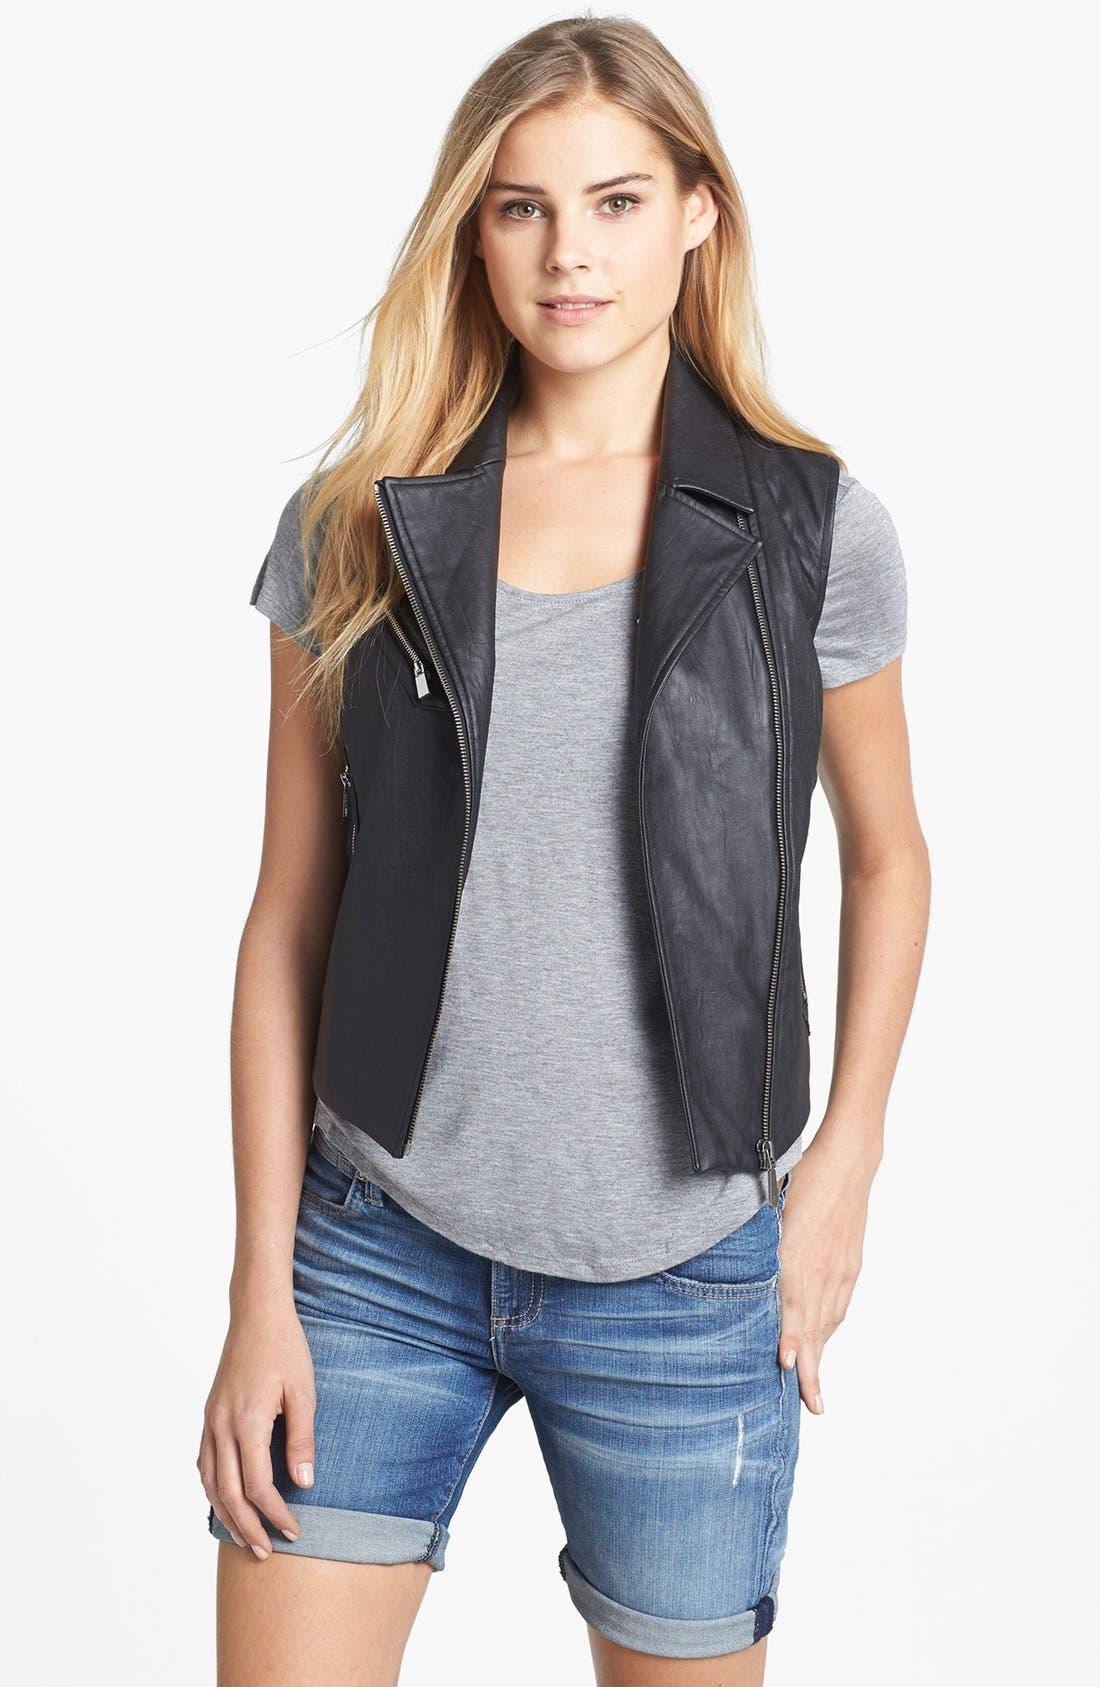 Alternate Image 1 Selected - Two by Vince Camuto Faux Leather Moto Vest